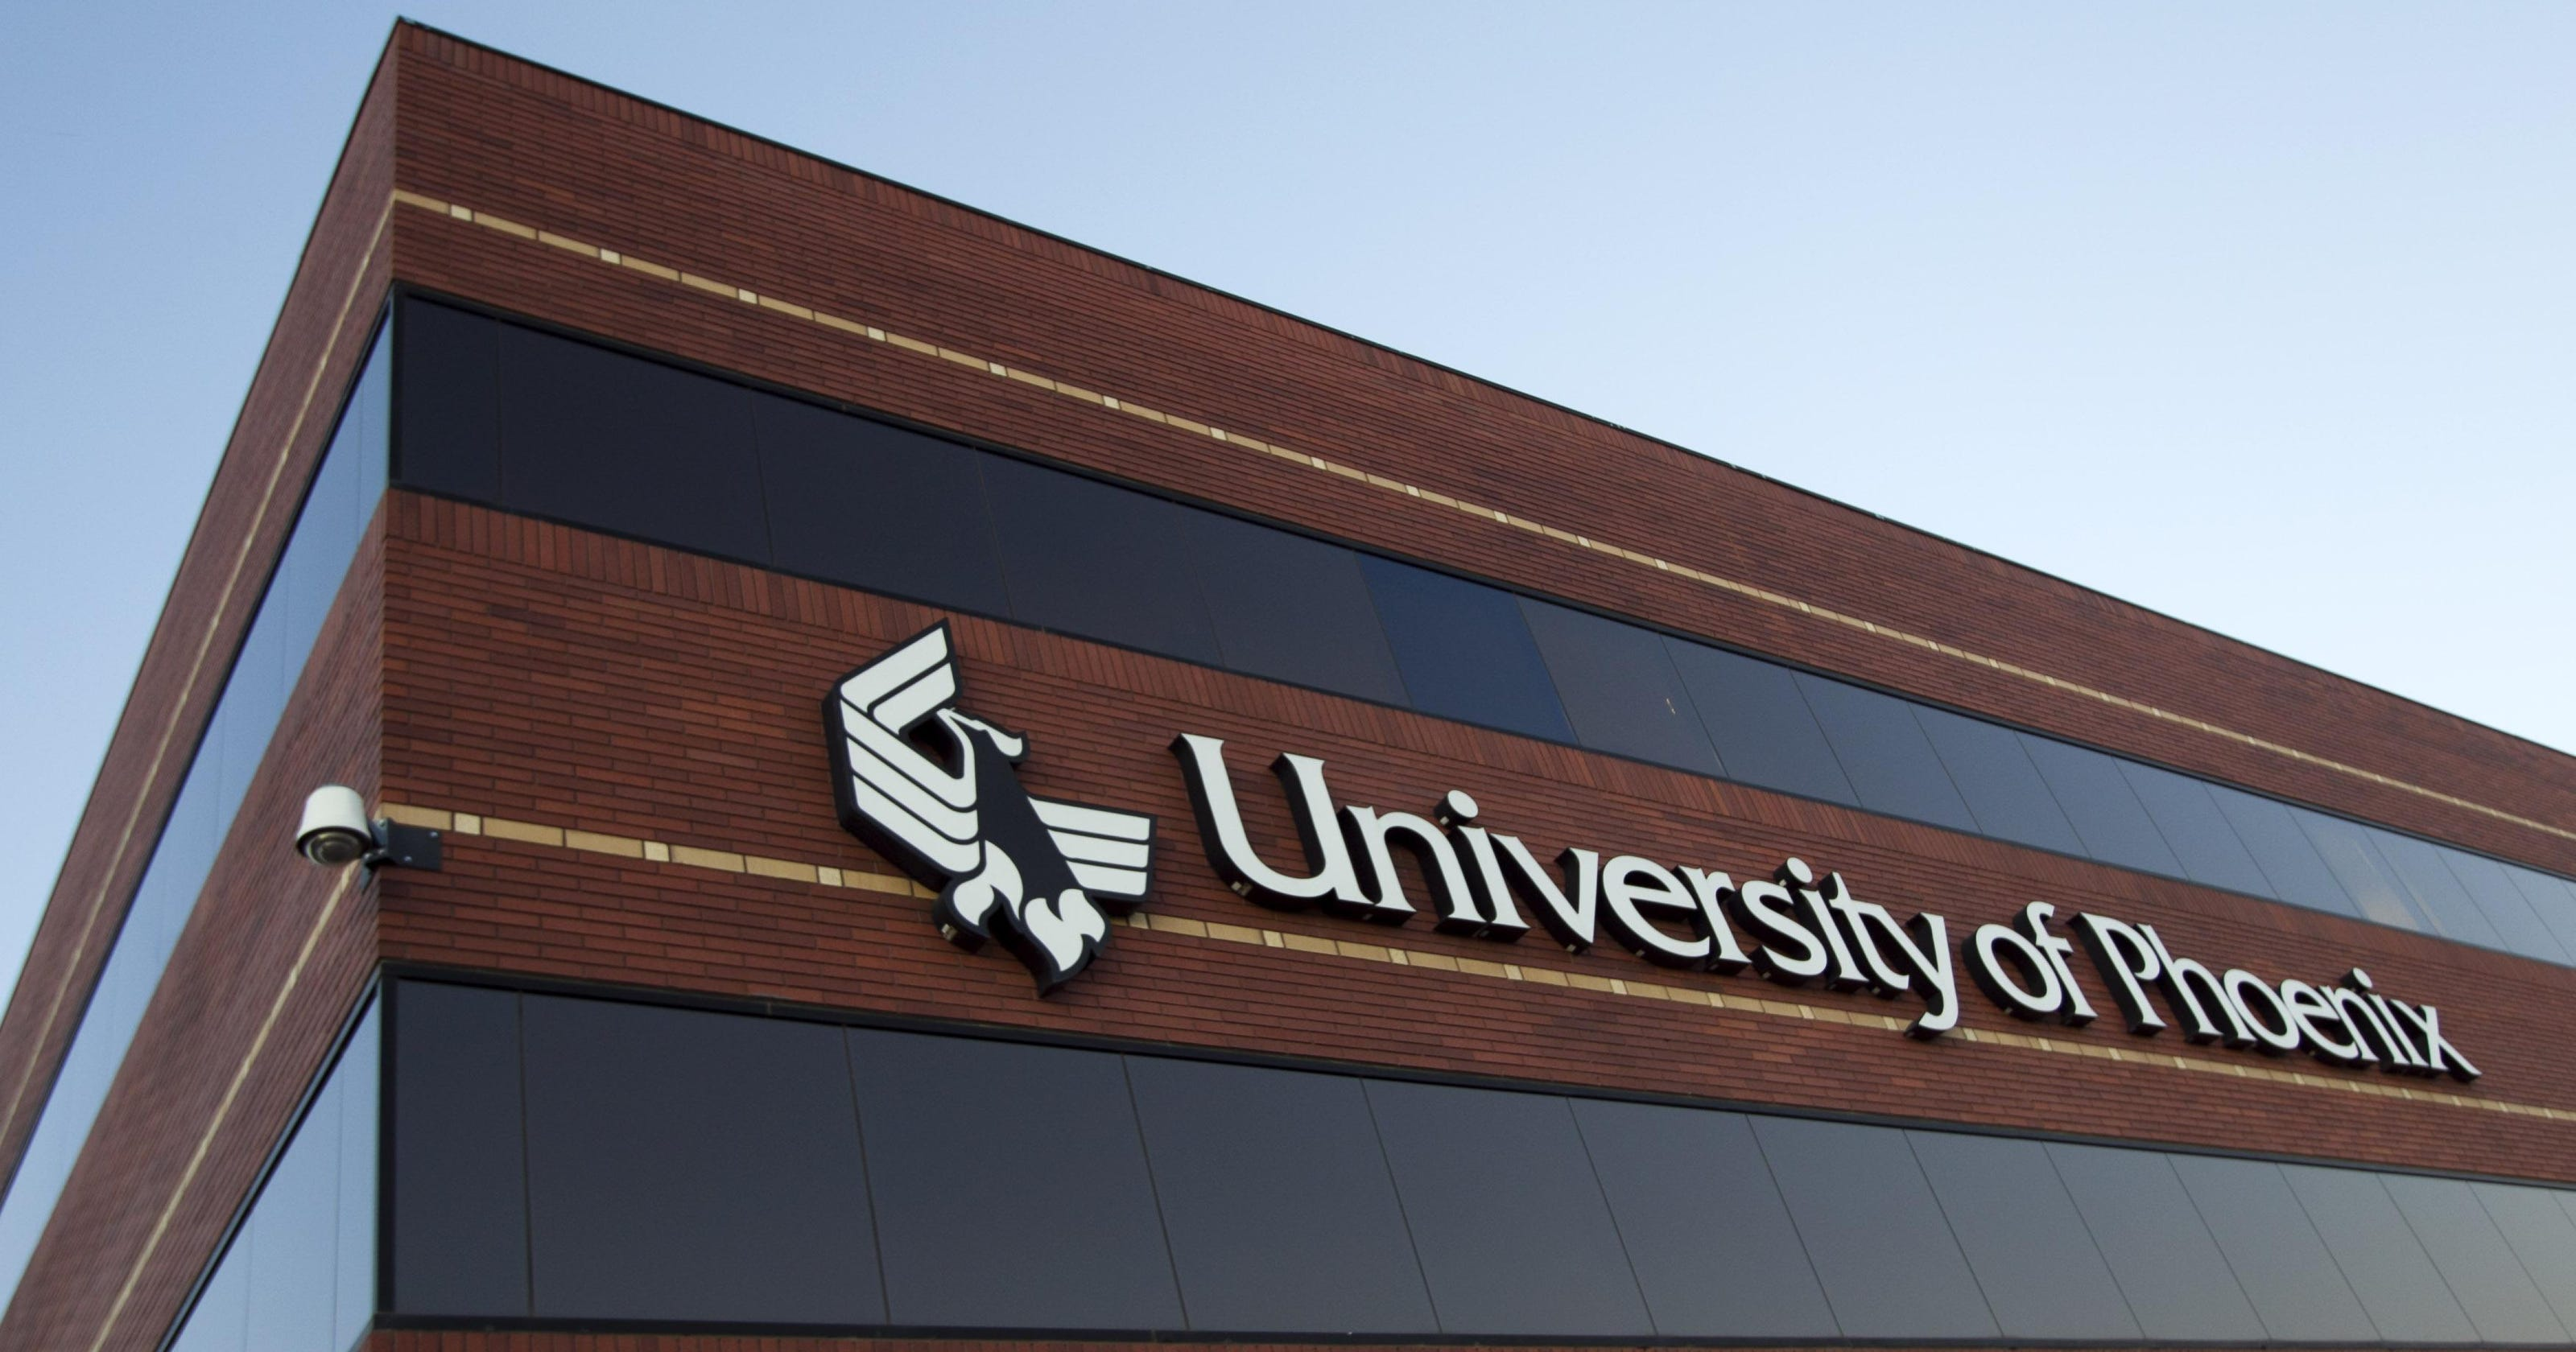 Accrediting agency lifts sanction against University of Phoenix